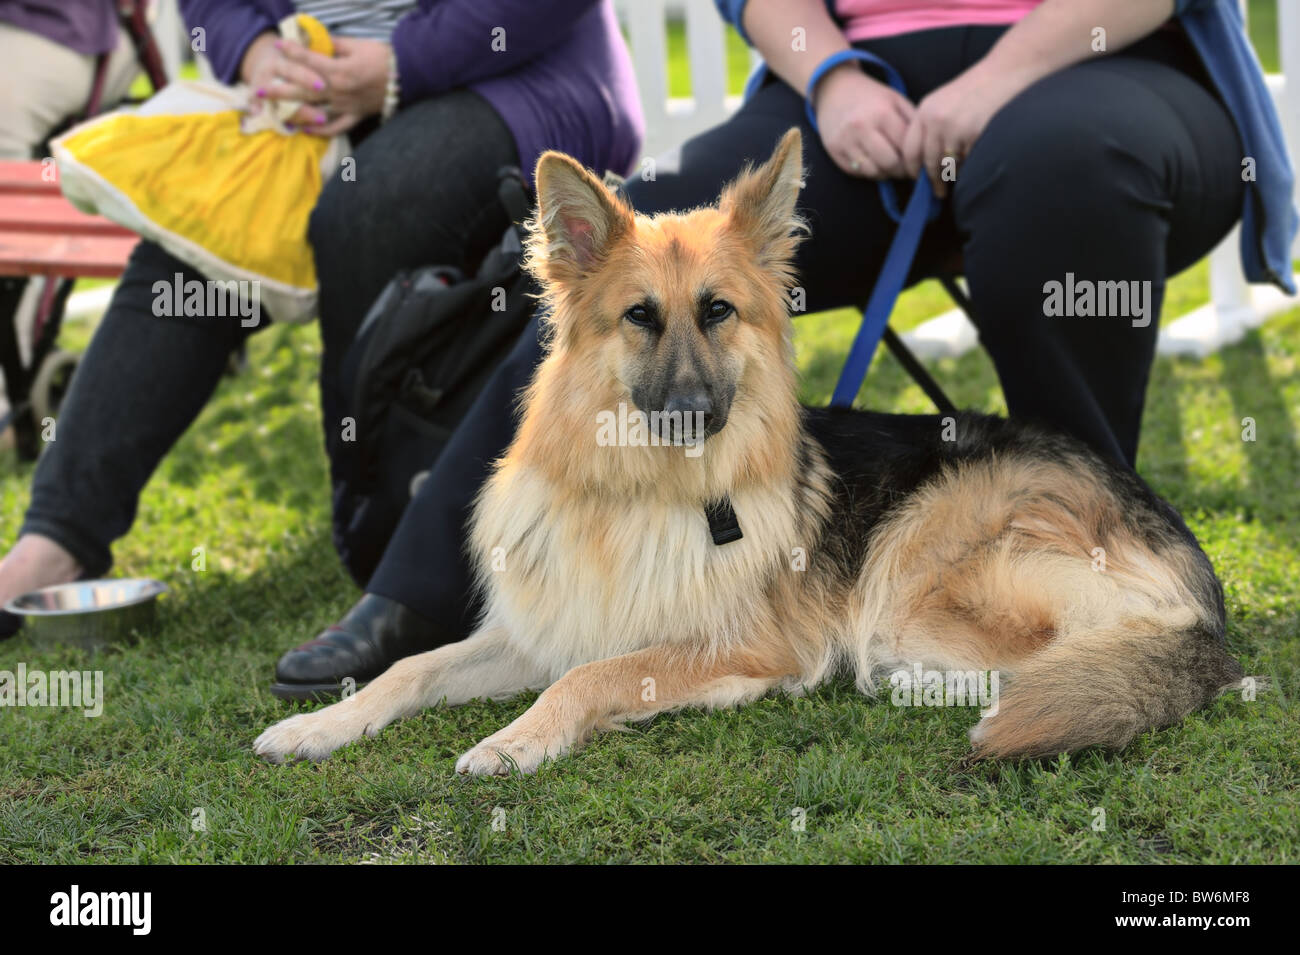 Young alsatian (german shepherd) dog lying on grass, looking at the camera - Stock Image